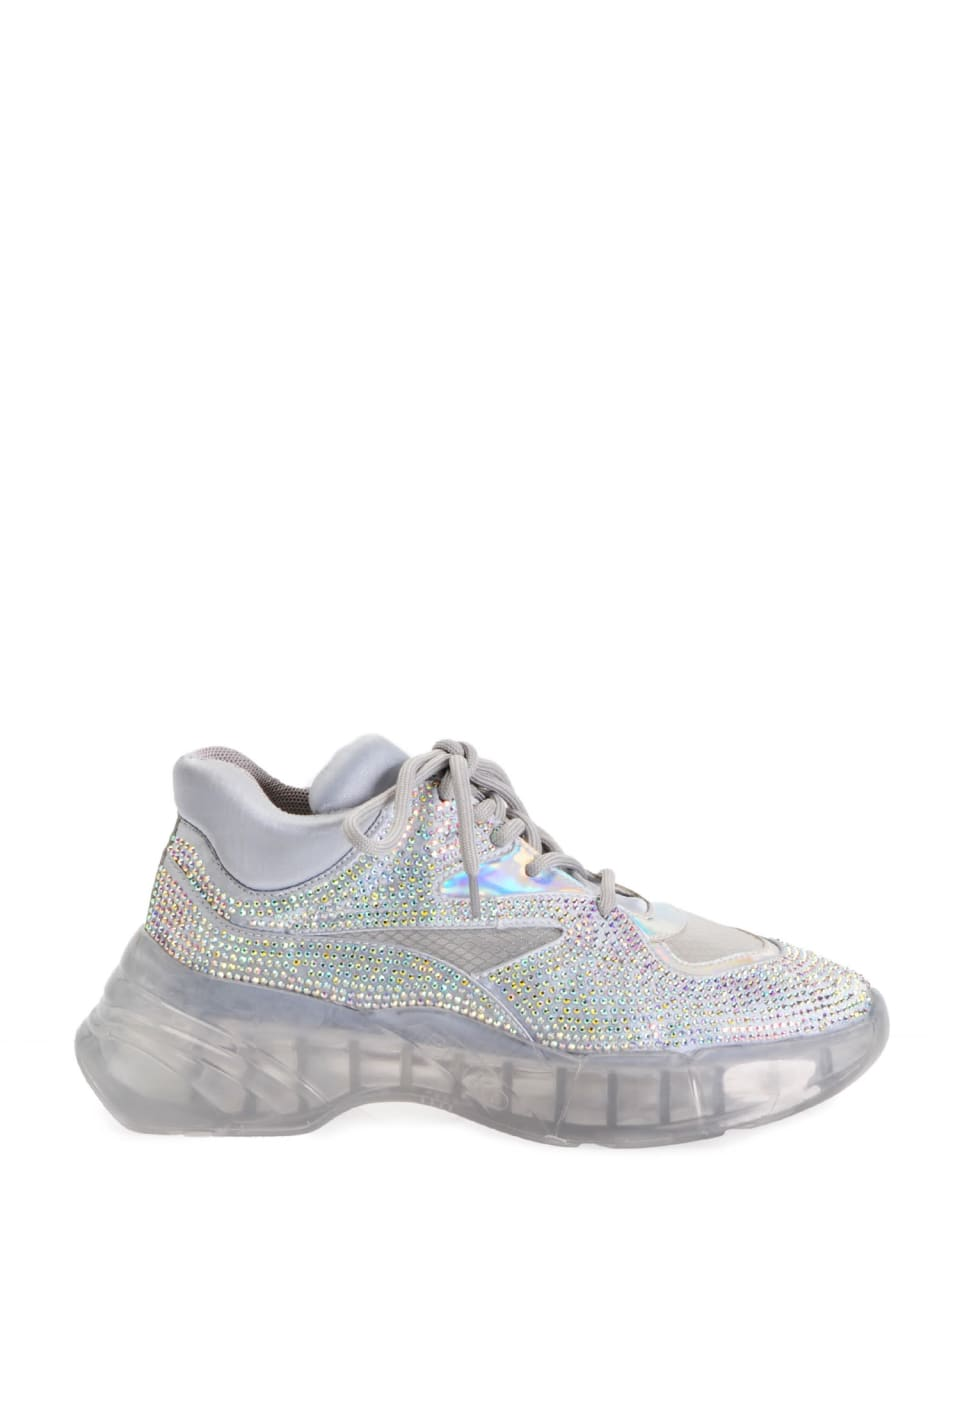 Full rhinestone diamond sneakers